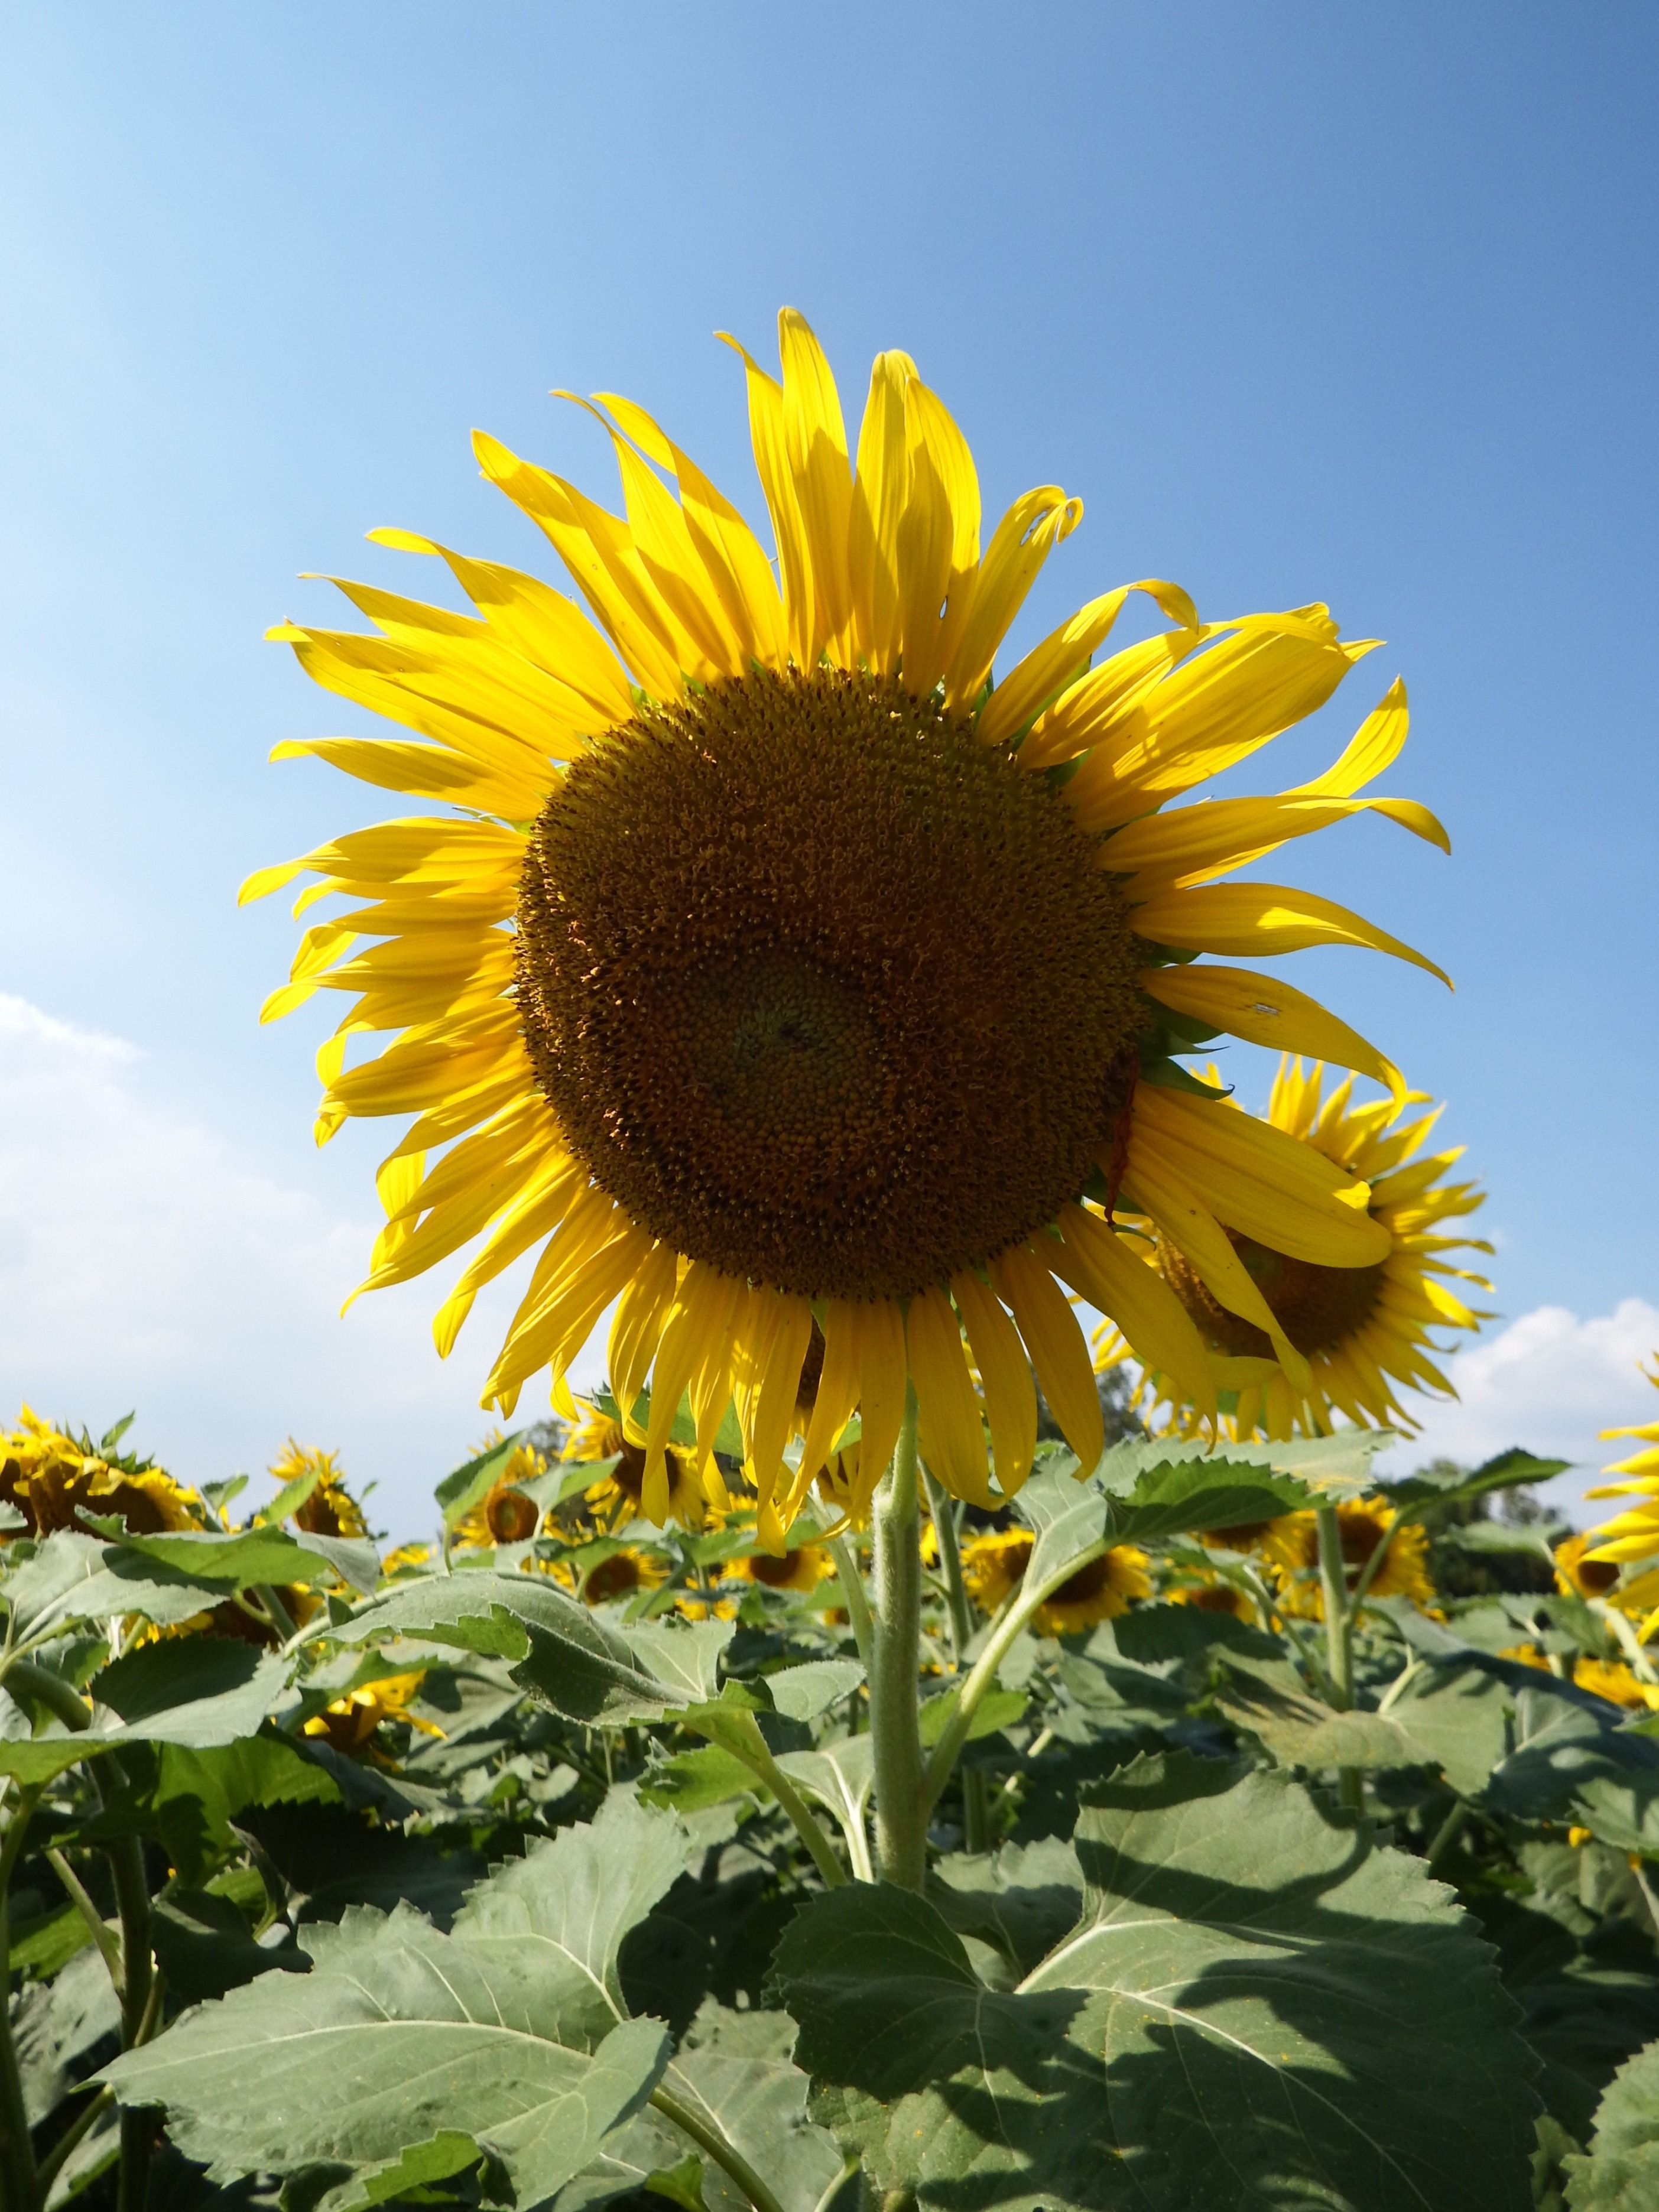 Single sunflower on blue sky background photo